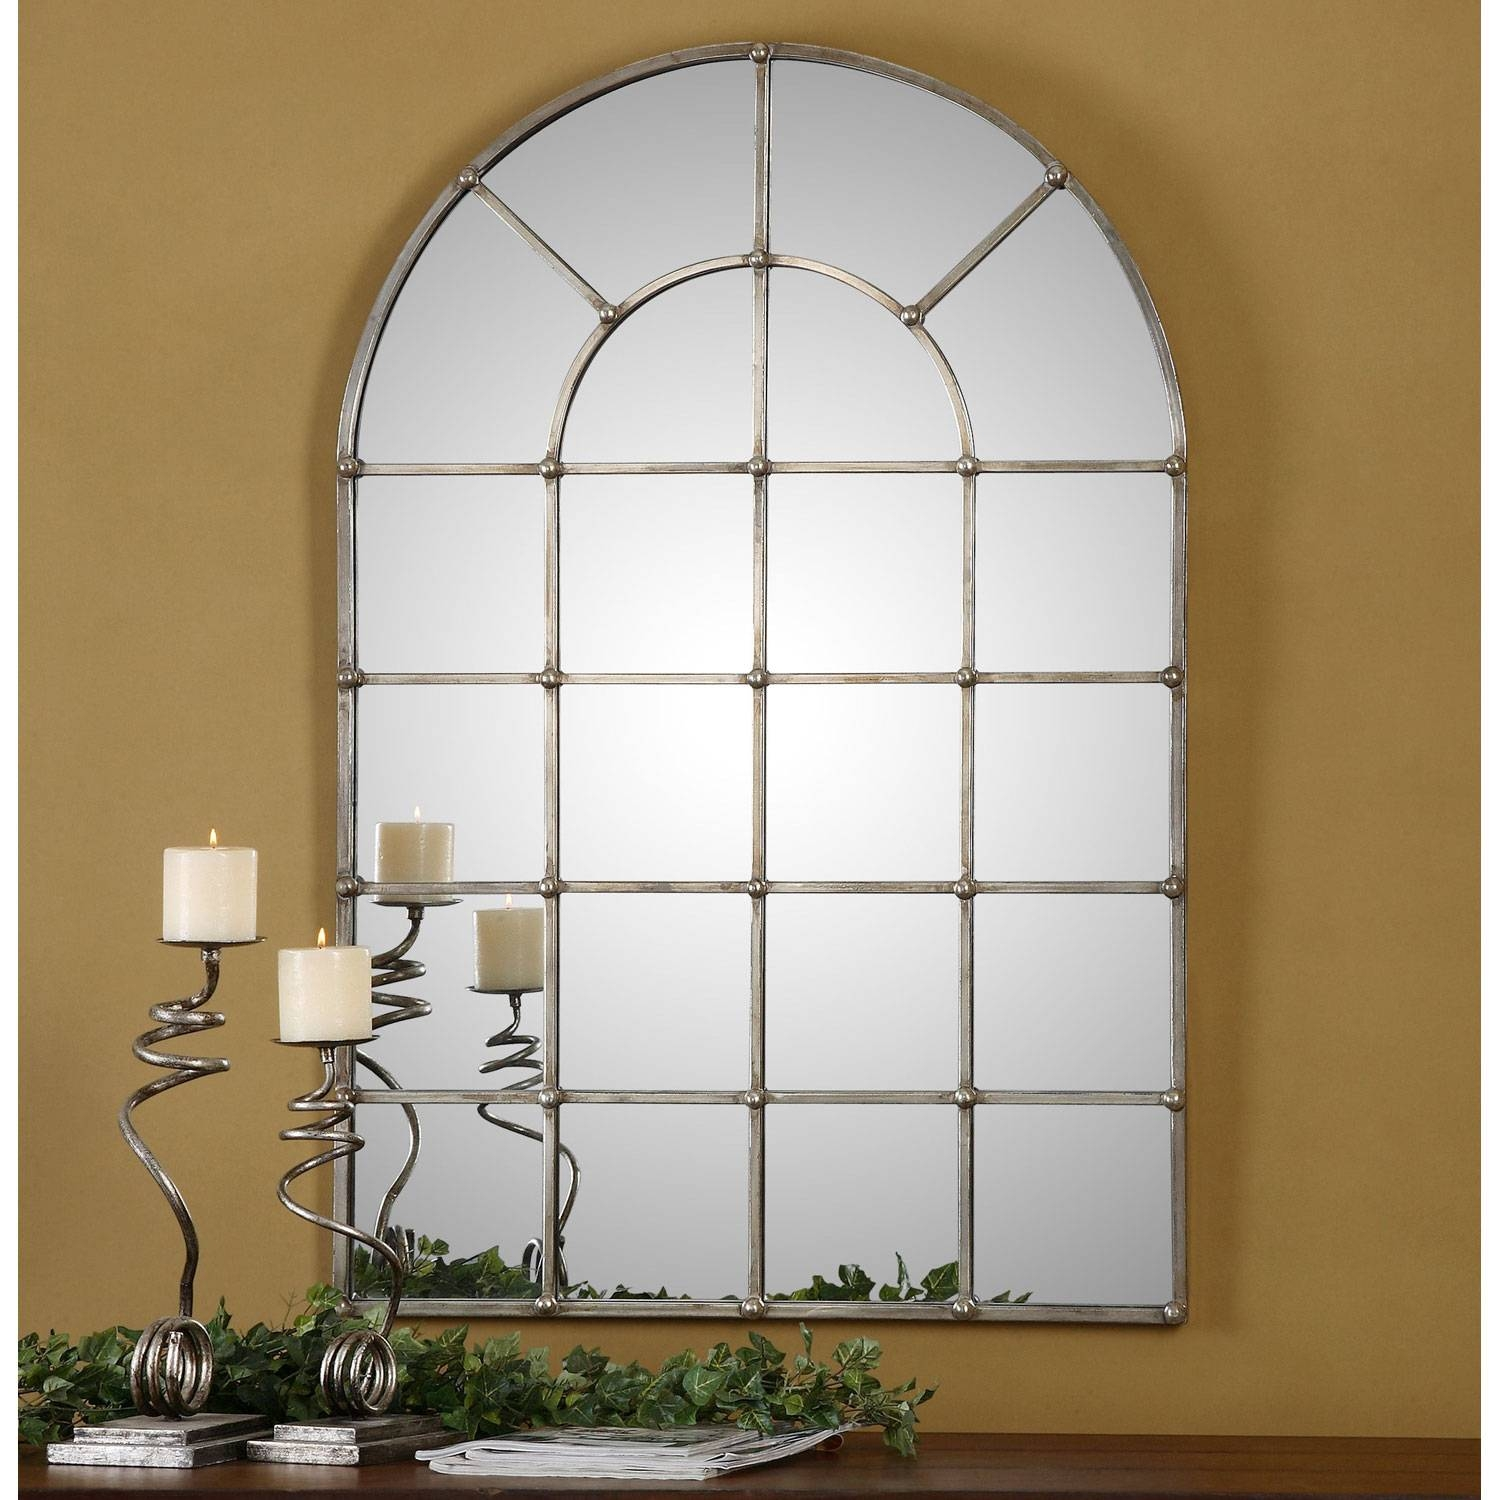 Barwell Forged Metal With Oxidized Plated Silver Arch Window inside Arched Window Mirrors (Image 10 of 25)